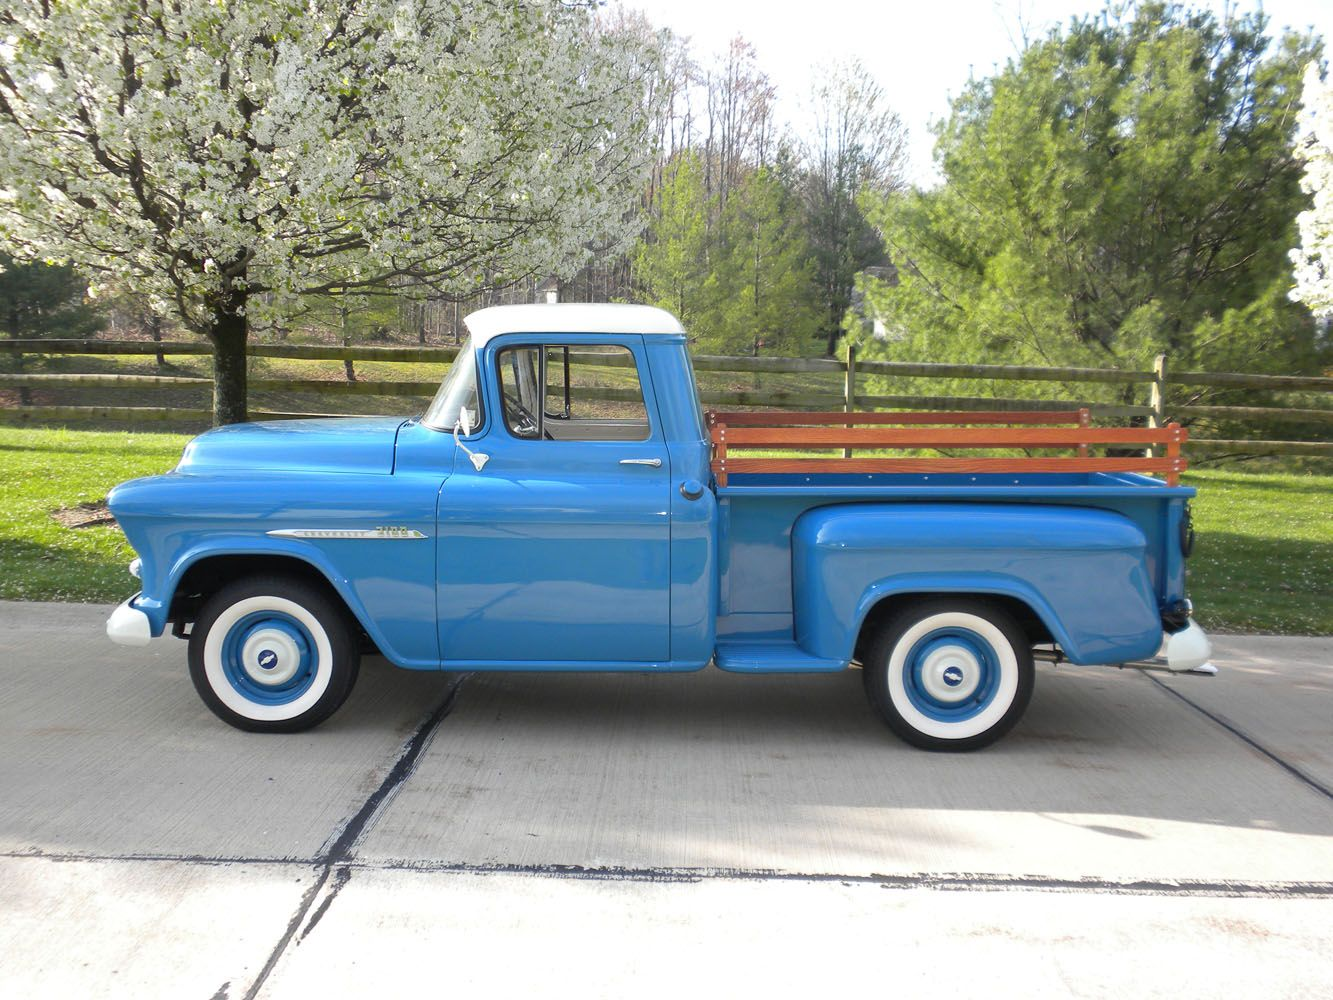 1955 chevrolet hot rod truck pictures to pin on pinterest - 1955 Chevy Truck 1955 Second Series Chevy Gmc Pickup Truck